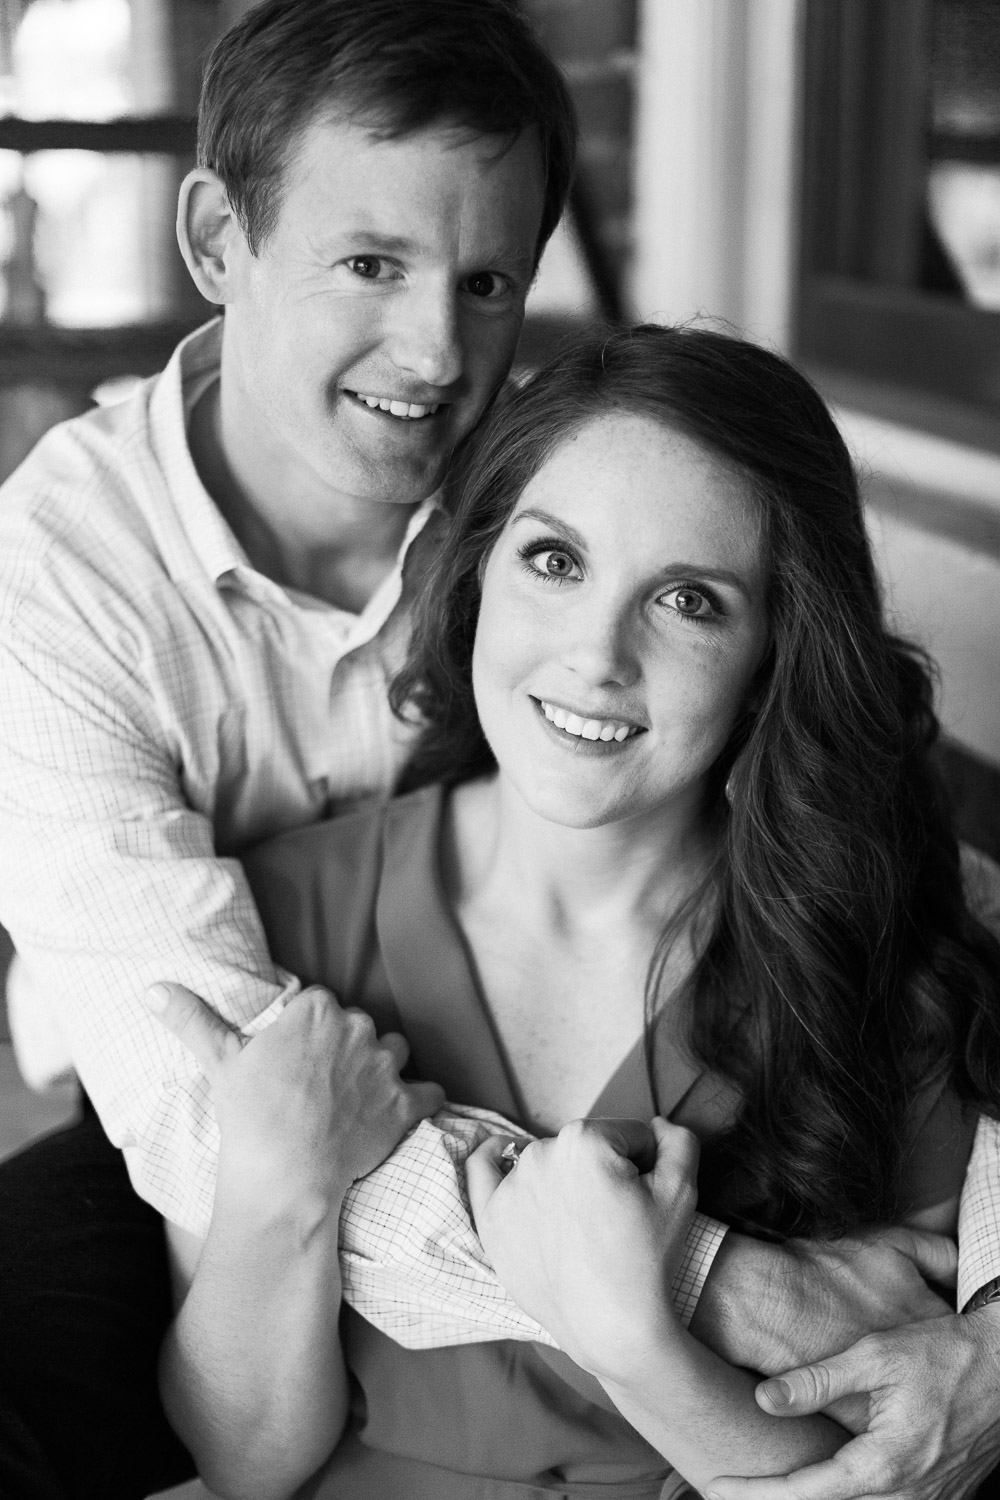 Downtown Raleigh spring engagement session